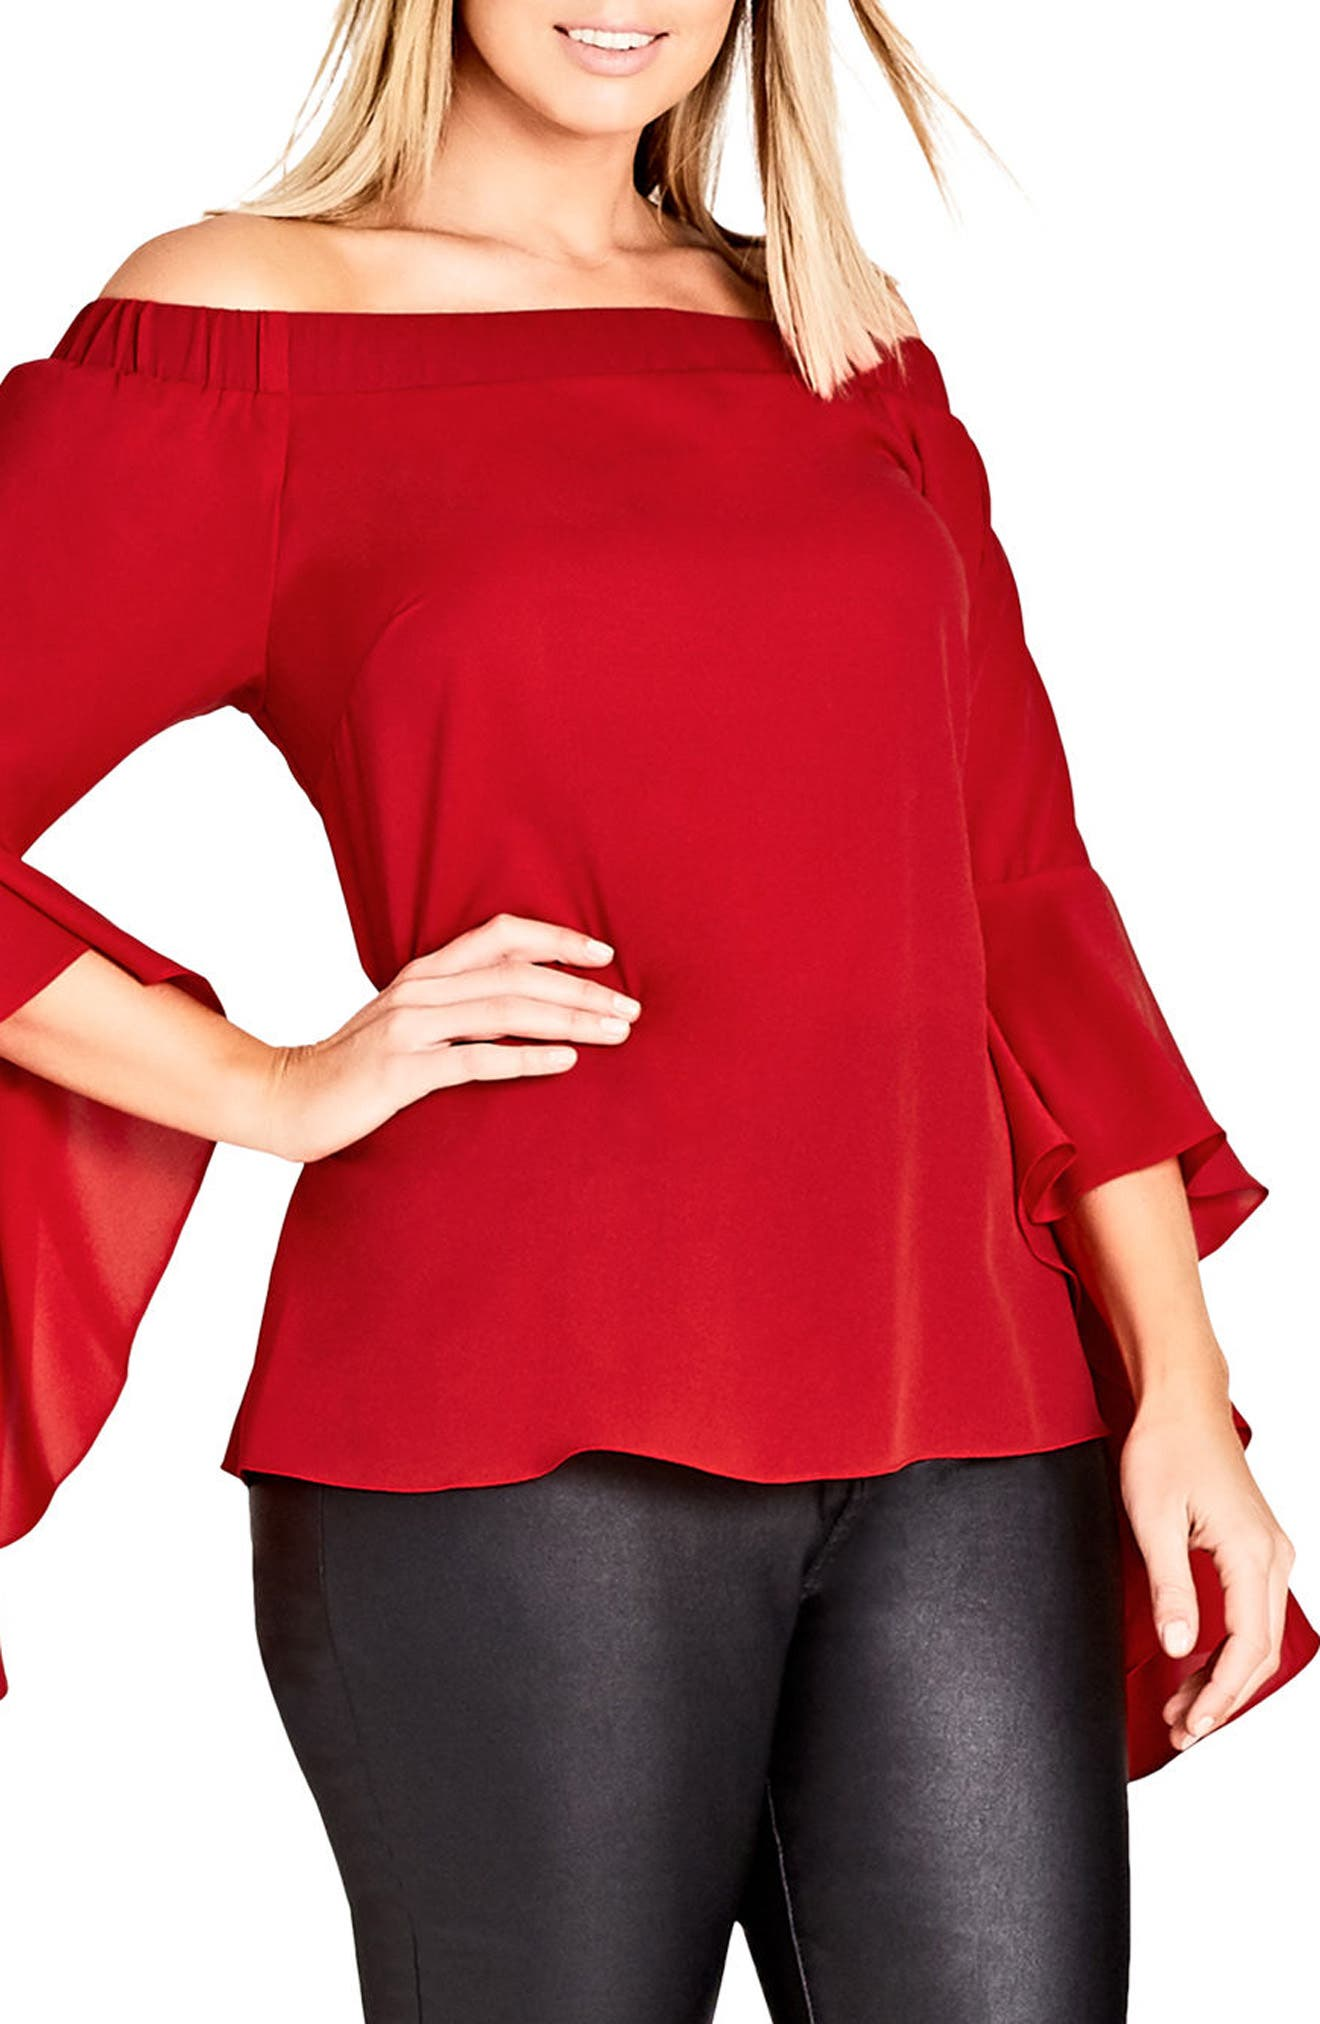 Alternate Image 1 Selected - City Chic Romantic Off the Shoulder Bell Sleeve Top (Plus Size)